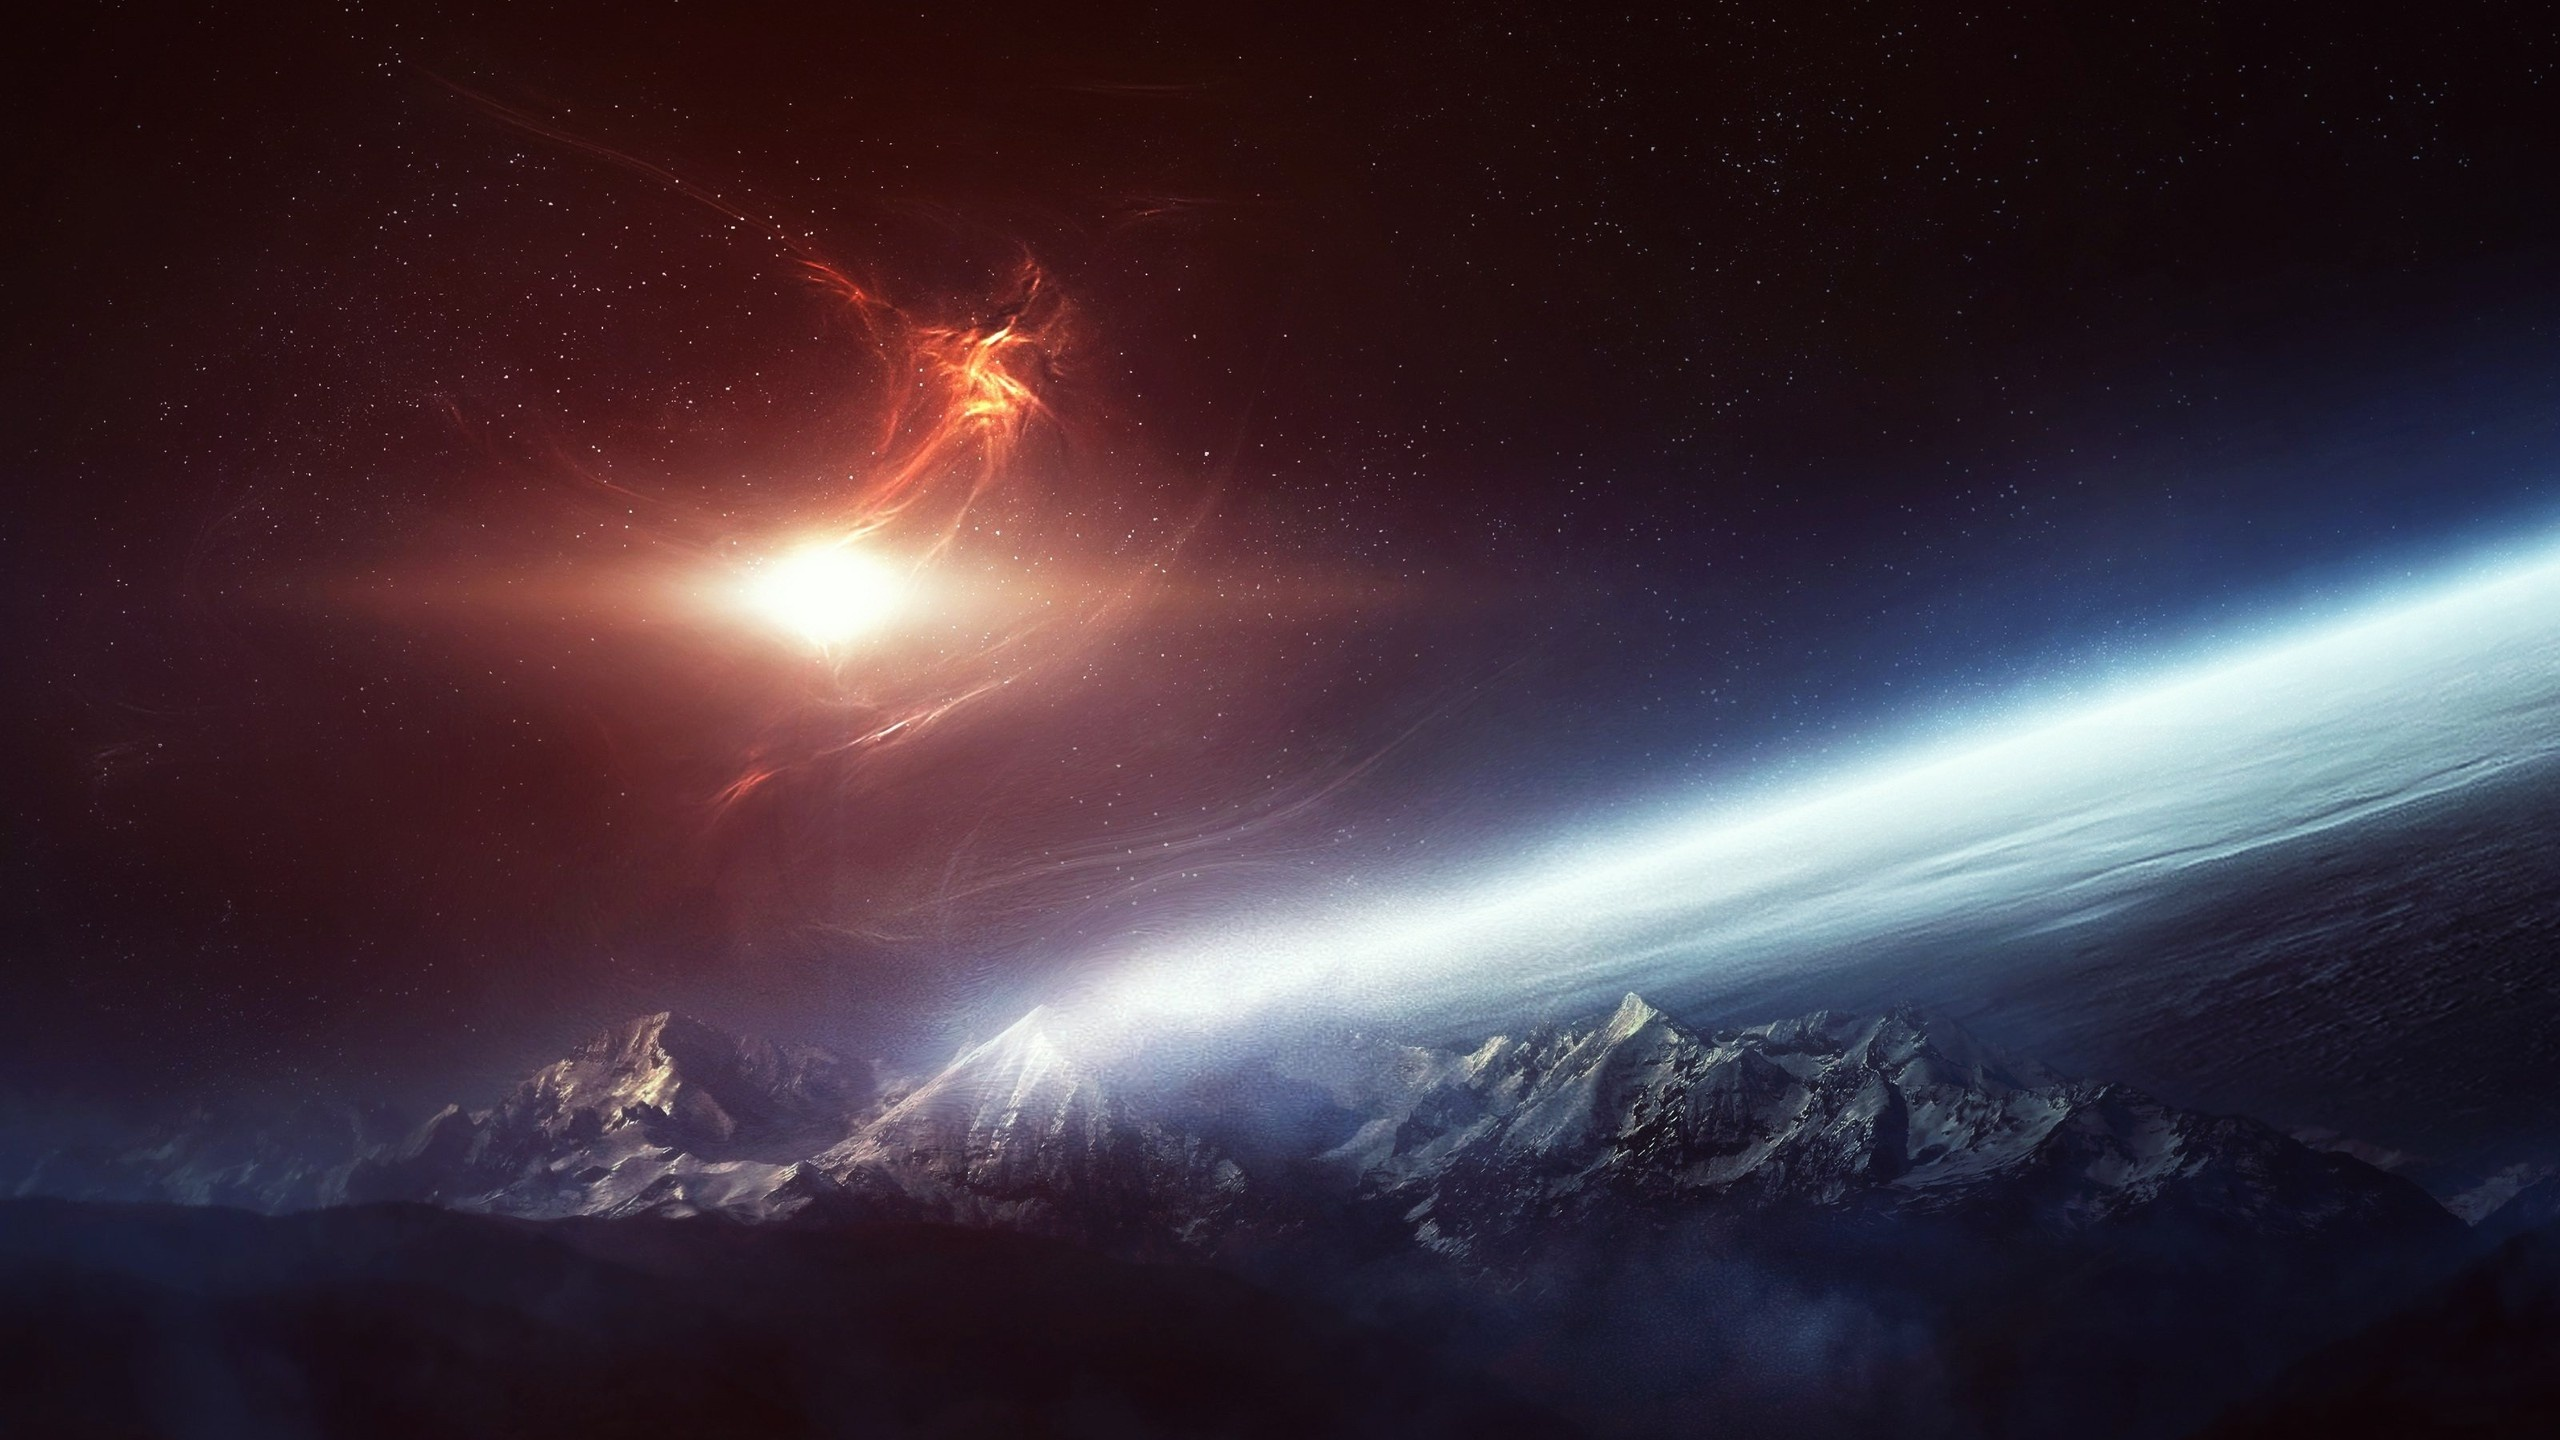 Outer space wallpapers 2560x1440 687307 - Space 2560 x 1440 ...